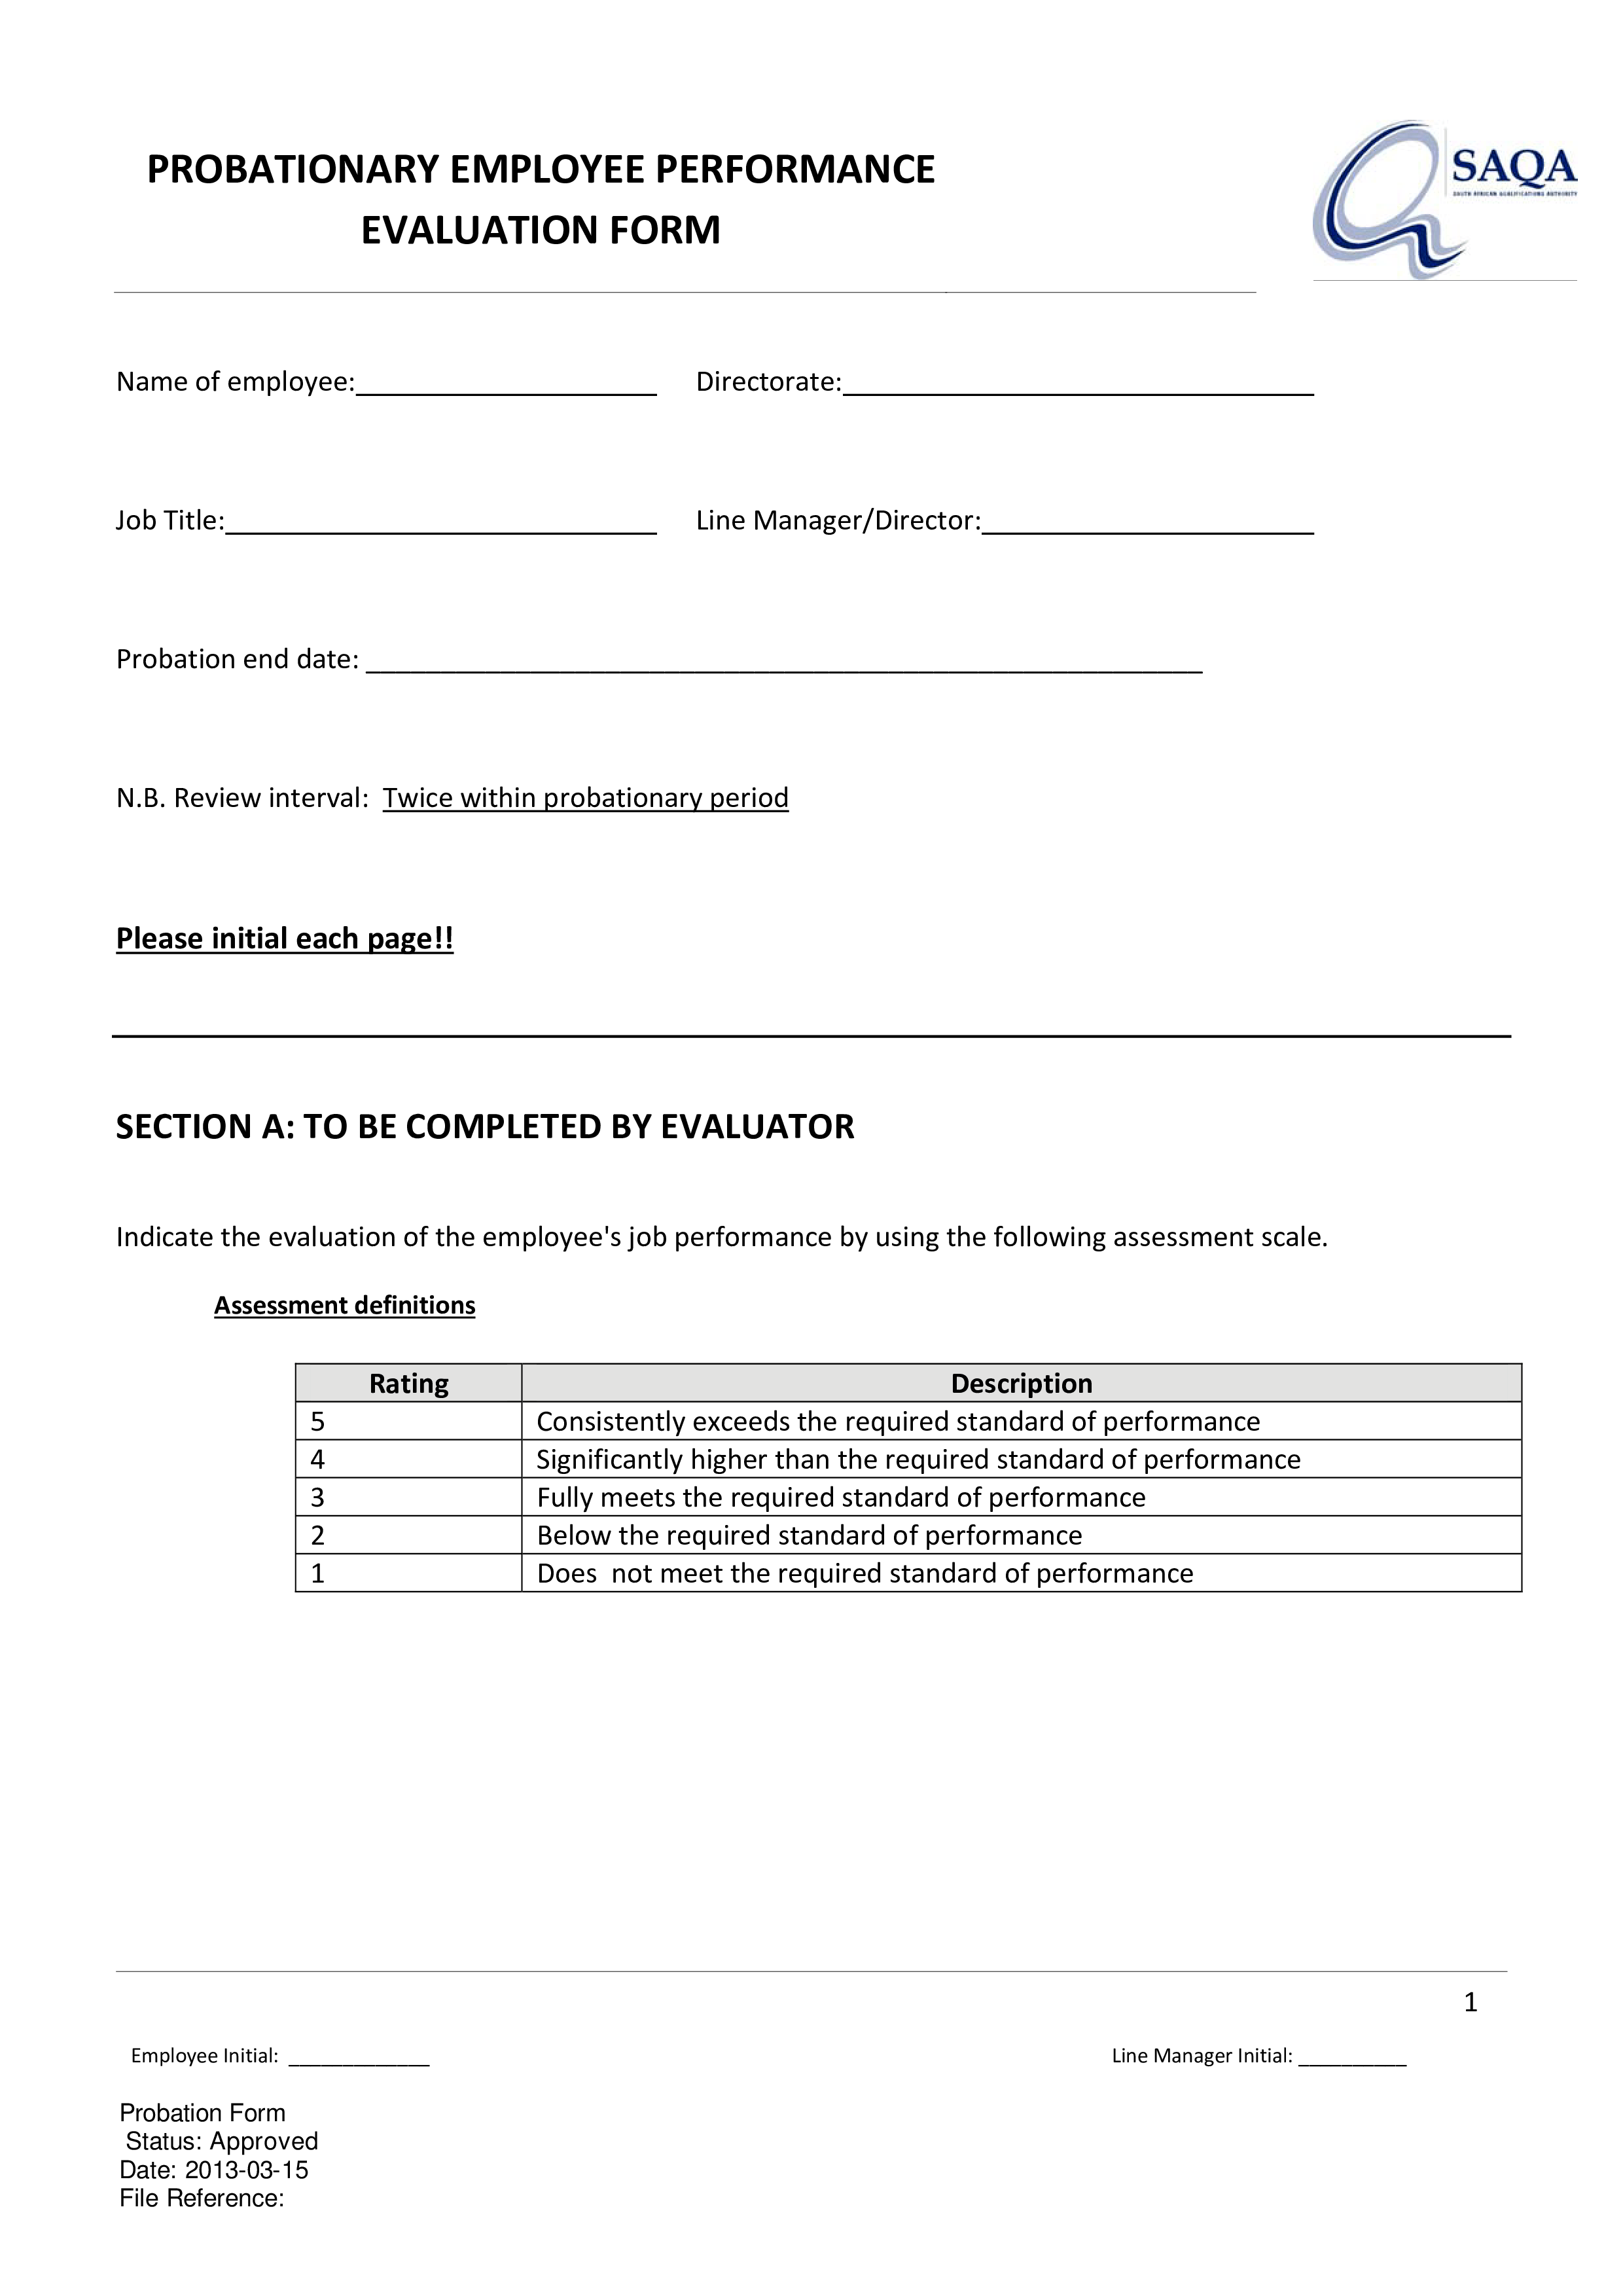 Employee Probation Review Form   Templates at allbusinesstemplates.com